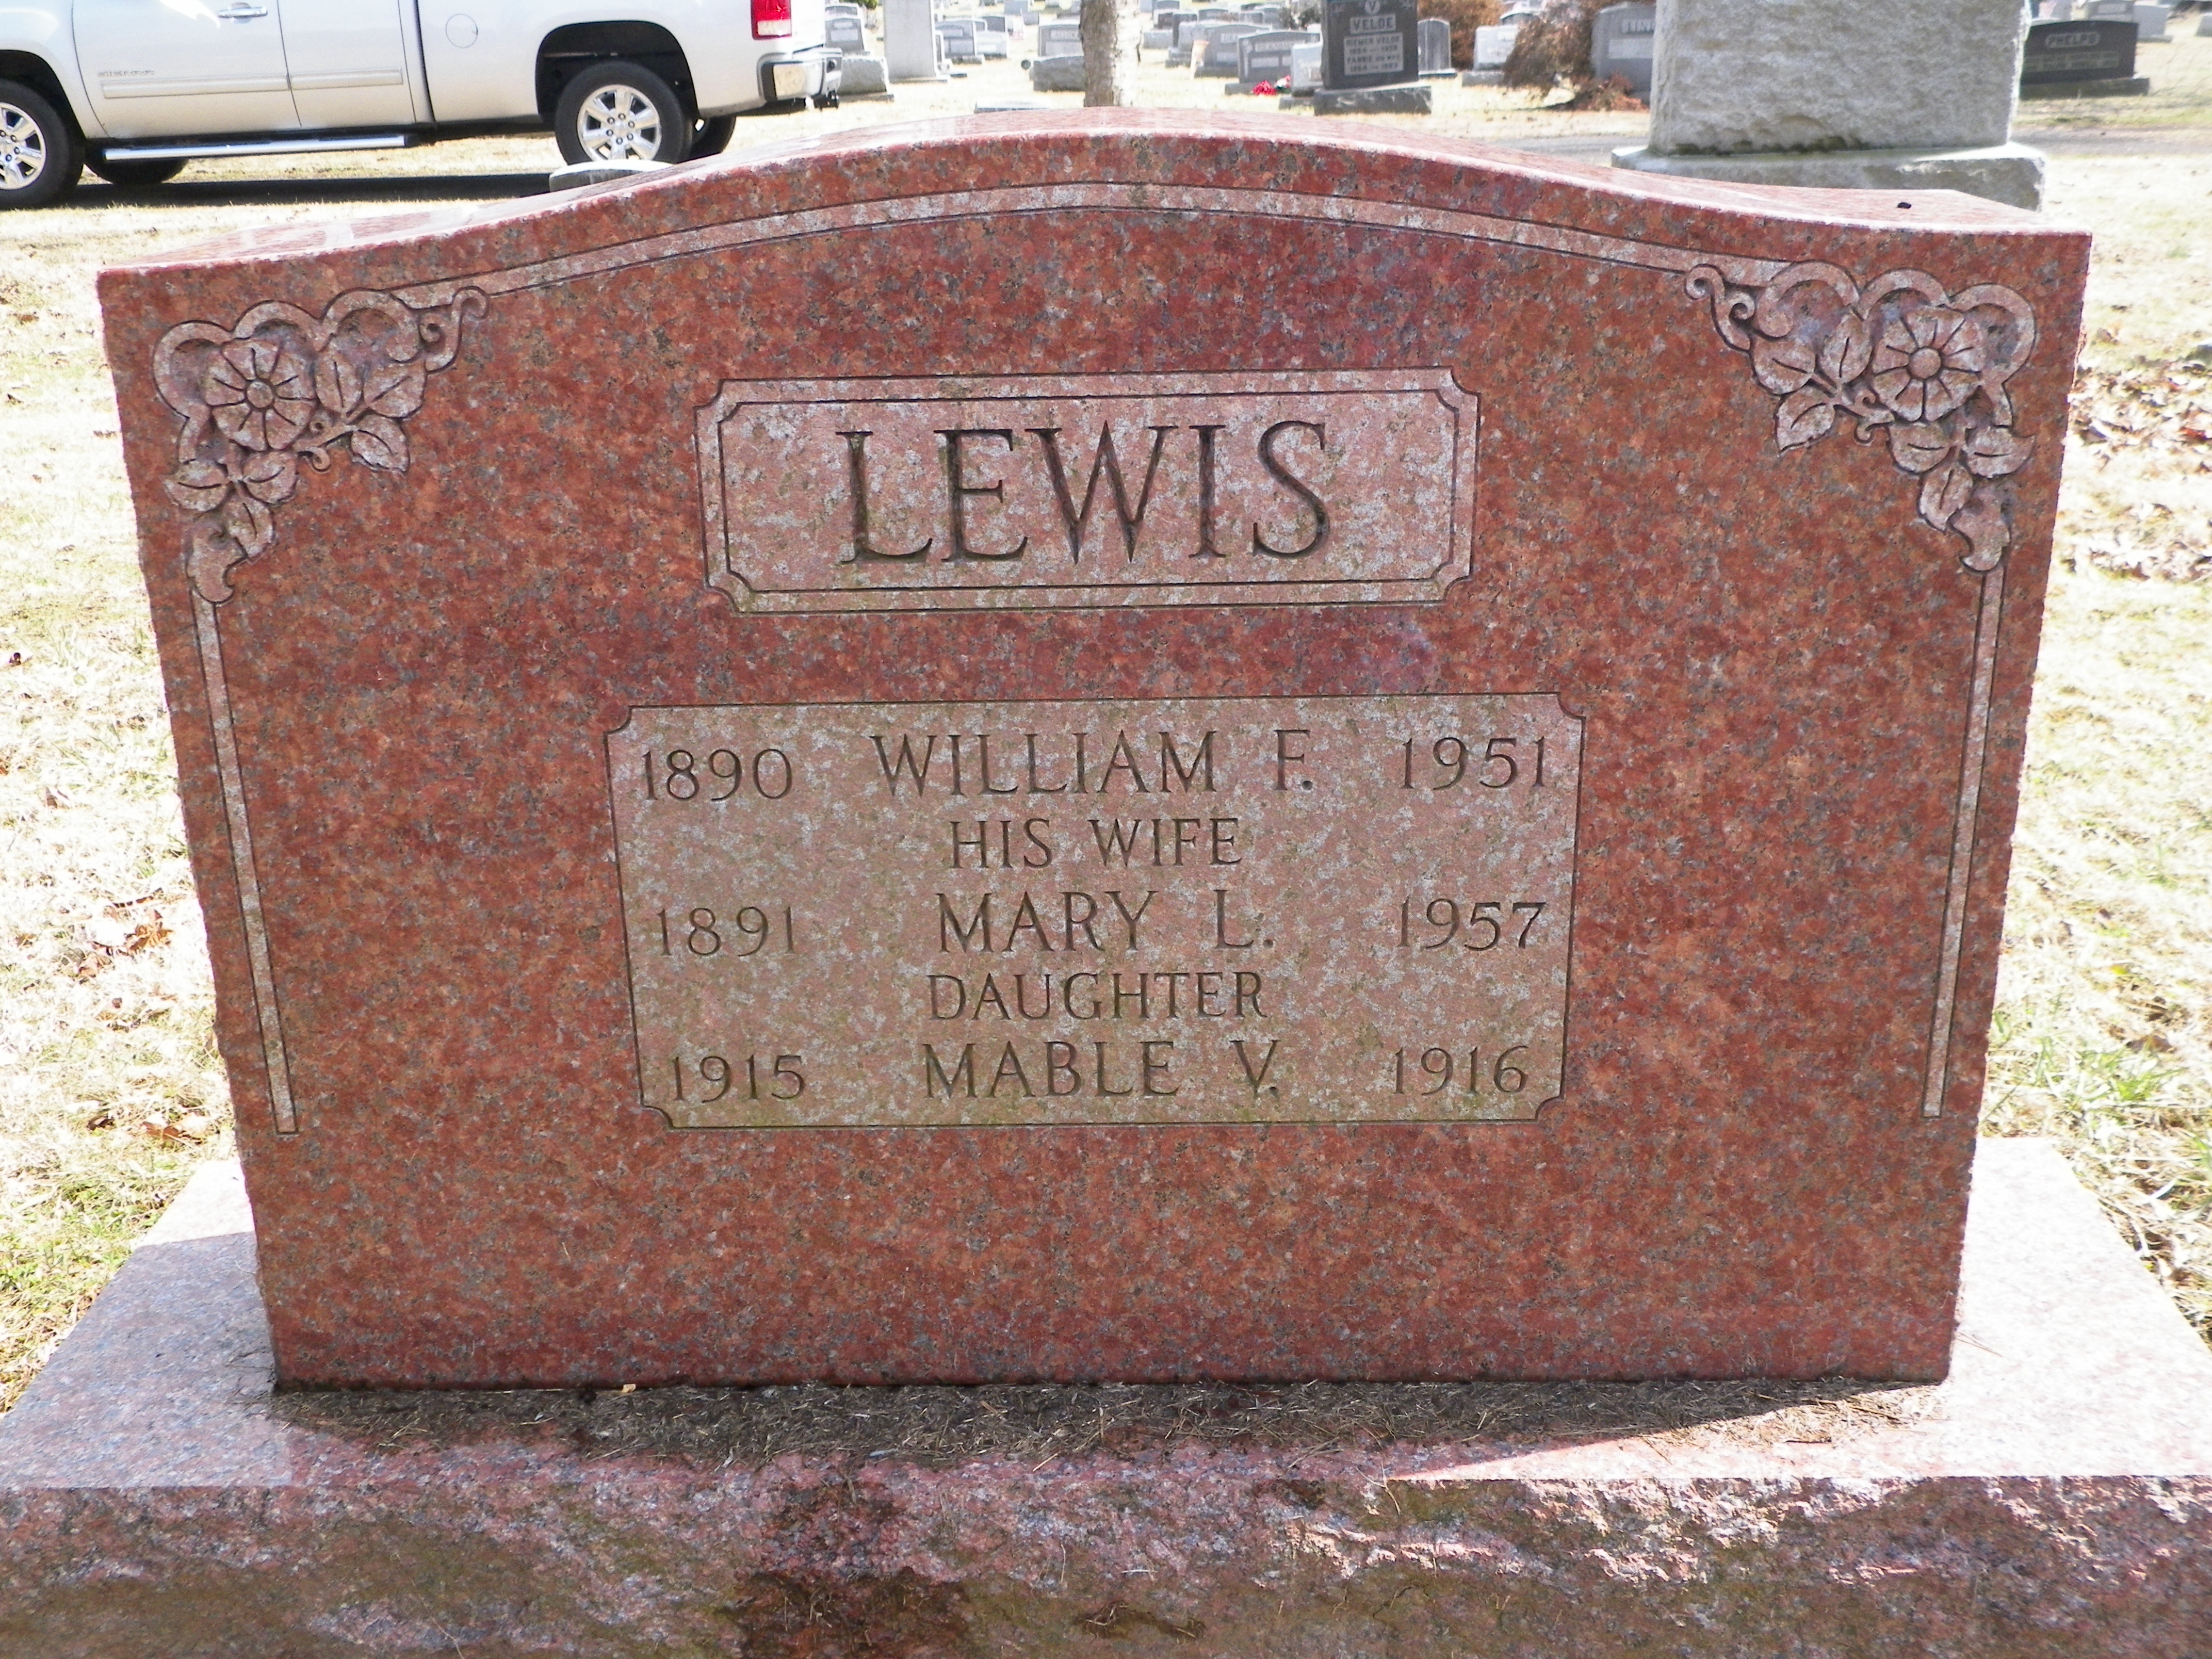 William Edward Lewis